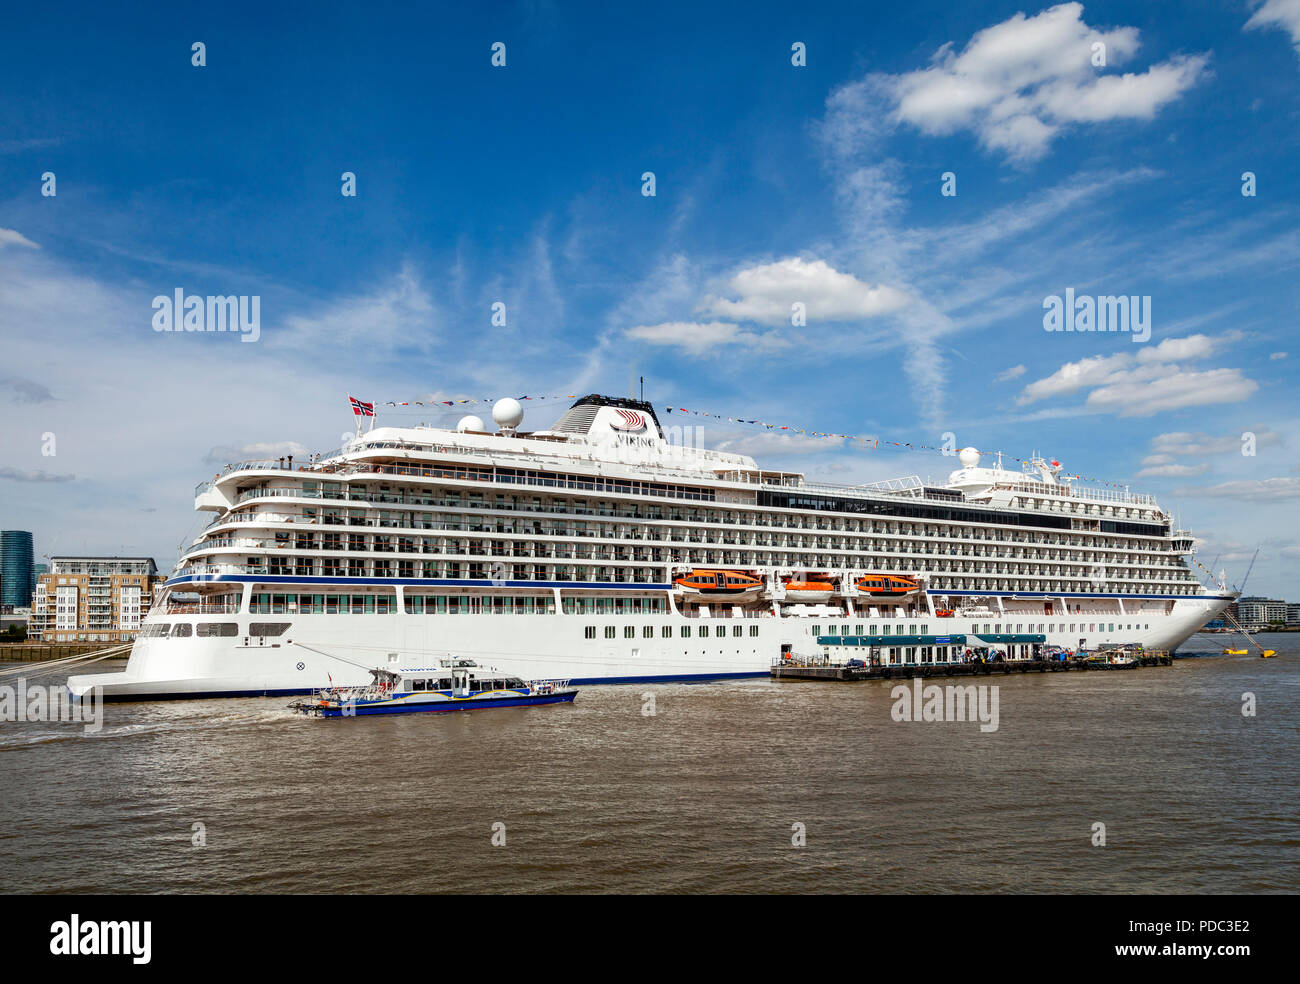 The Viking Sky Cruise Liner Moored On The River Thames At Greenwich, London, UK - Stock Image